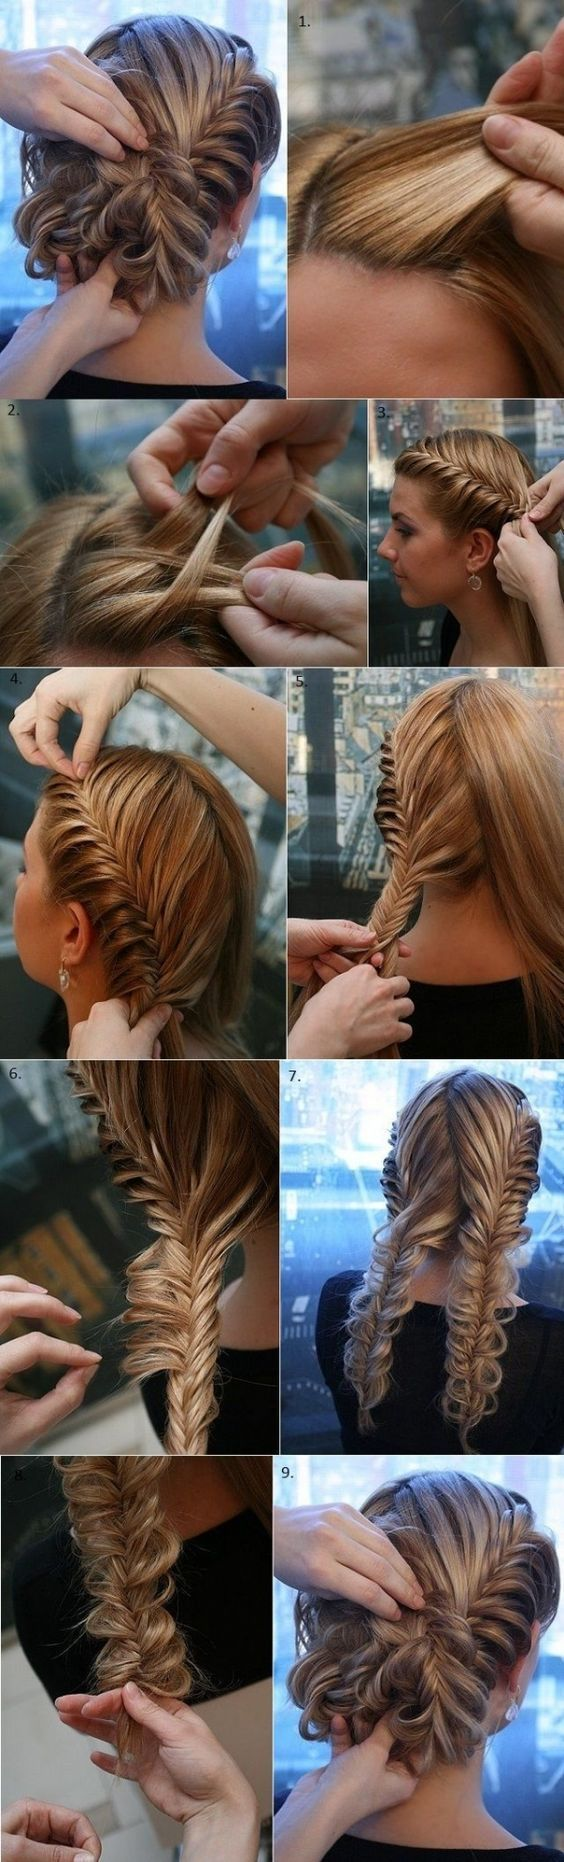 43 Fancy Braided Hairstyle Ideas from Pinterest …